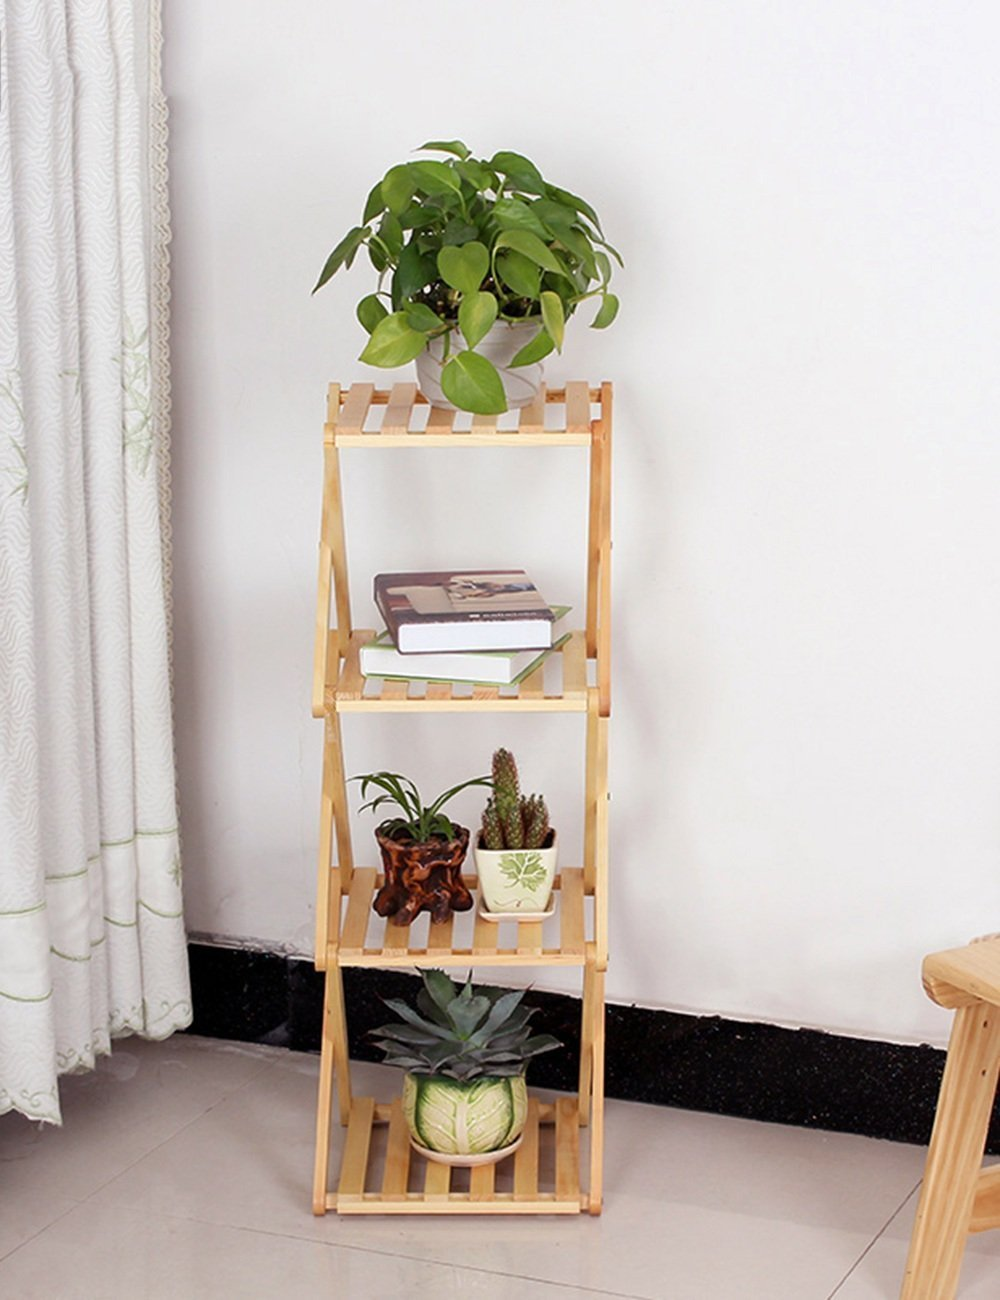 HOMEE Flower Rack Flower Racks Decorative Frame Floor Style Fold Household Shelves Solid Wood Bookcase Living Room Balcony Multilayer Shelves --Home Environment Decorations